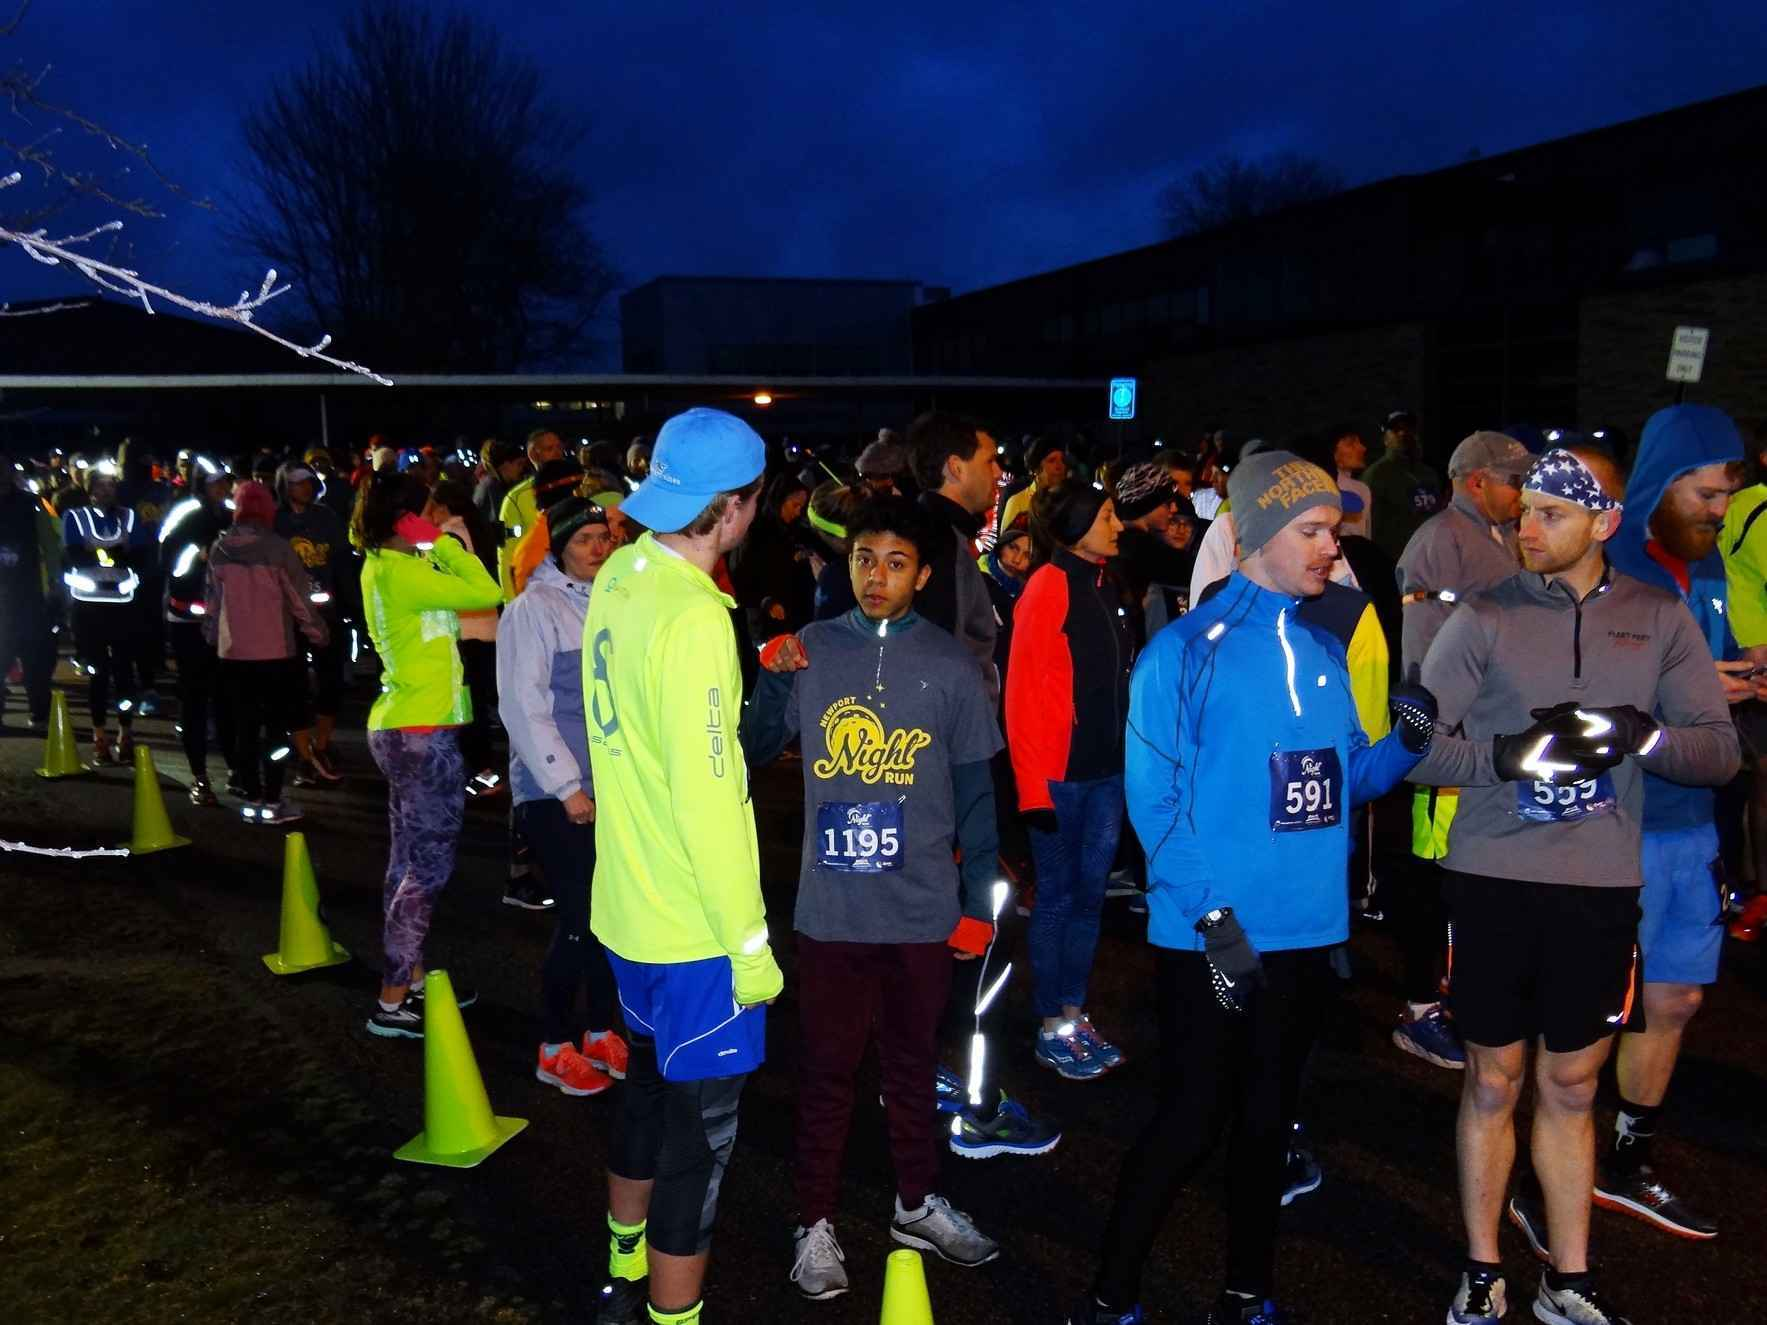 Sponsor the 2019 Newport Night Run for Education image